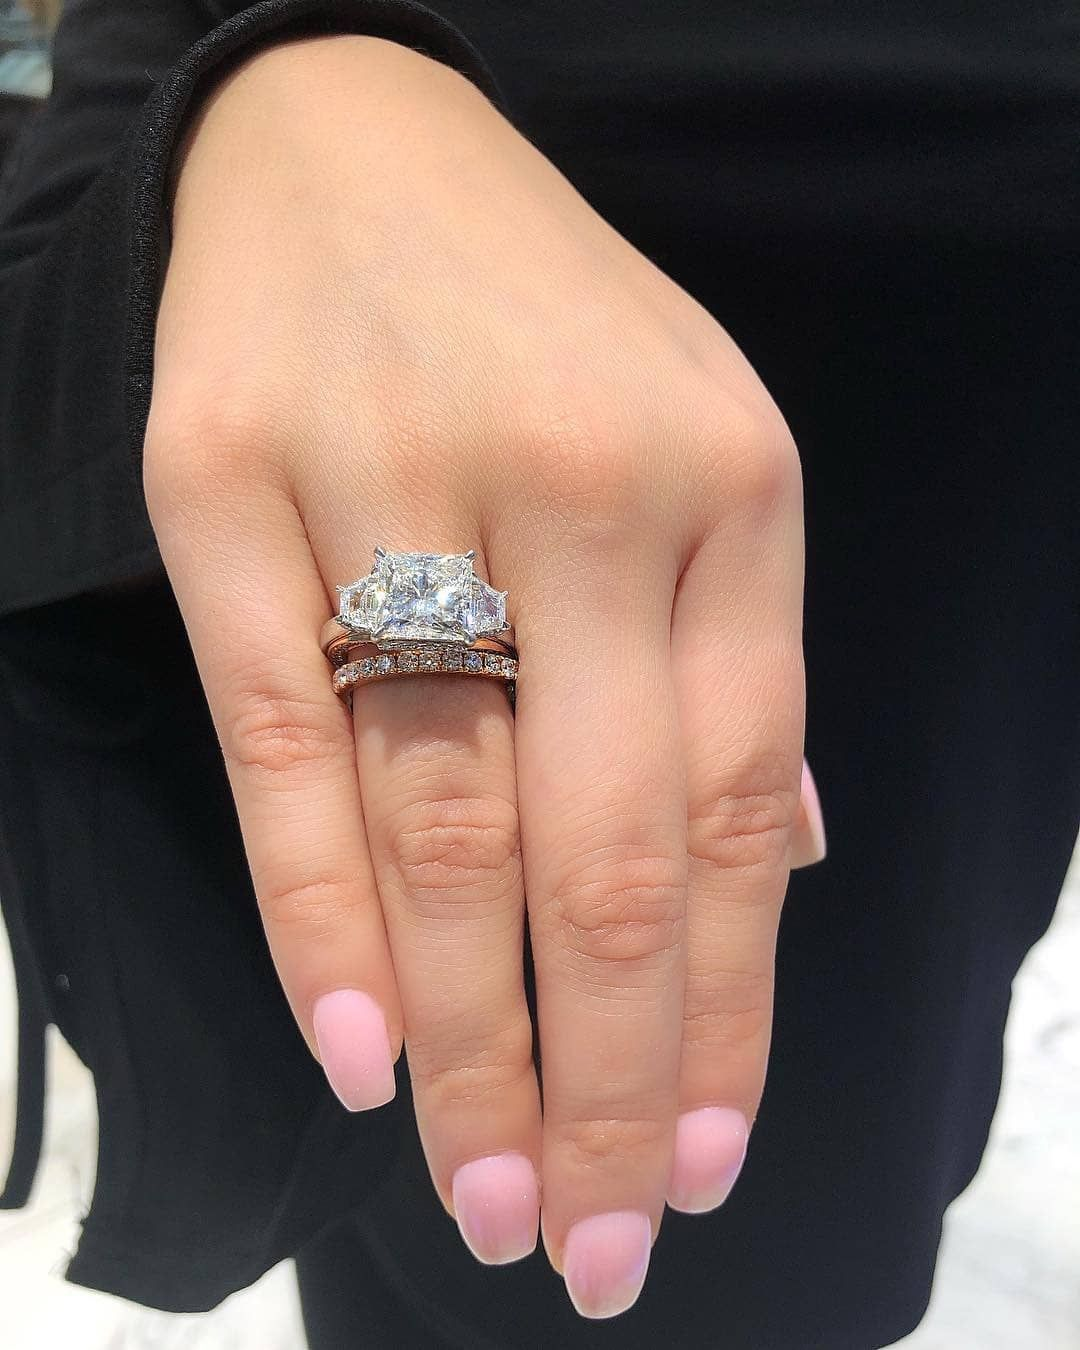 2019 Latest Design 2.40 Ct Princess Cut Three-stone Engagement Ring 14k White Gold Other Fine Rings